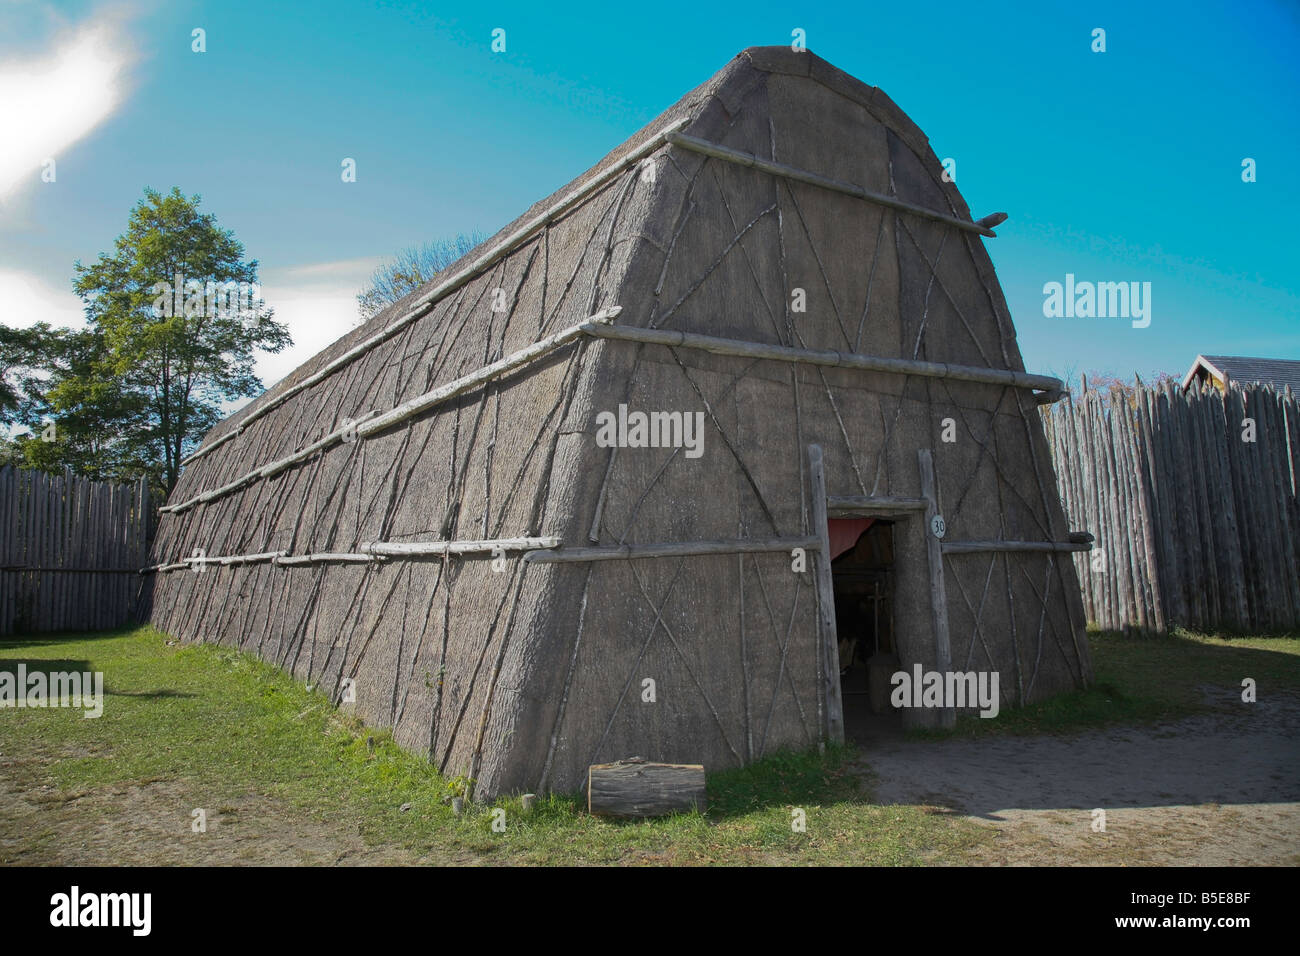 Huron Long-house authentic Huron Indian Village in Midland Ontario Canada - Stock Image